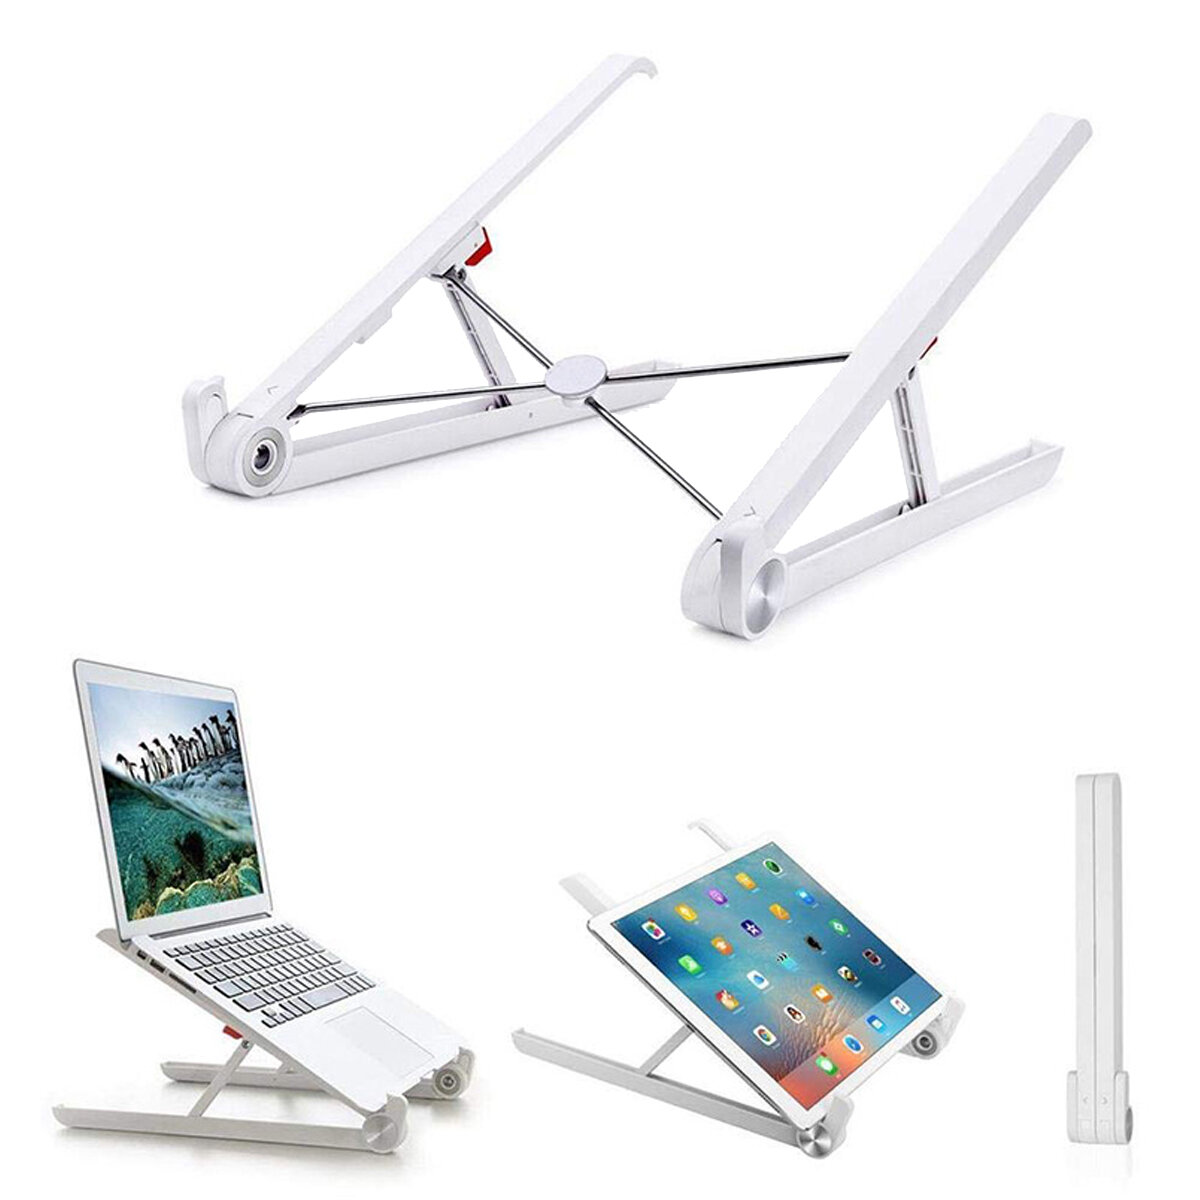 Portable Desktop Foldable Height Adjustable Notebook Stand Heat Dissipation For Notebook MacBook 11.0-17.0 Inches, Banggood  - buy with discount